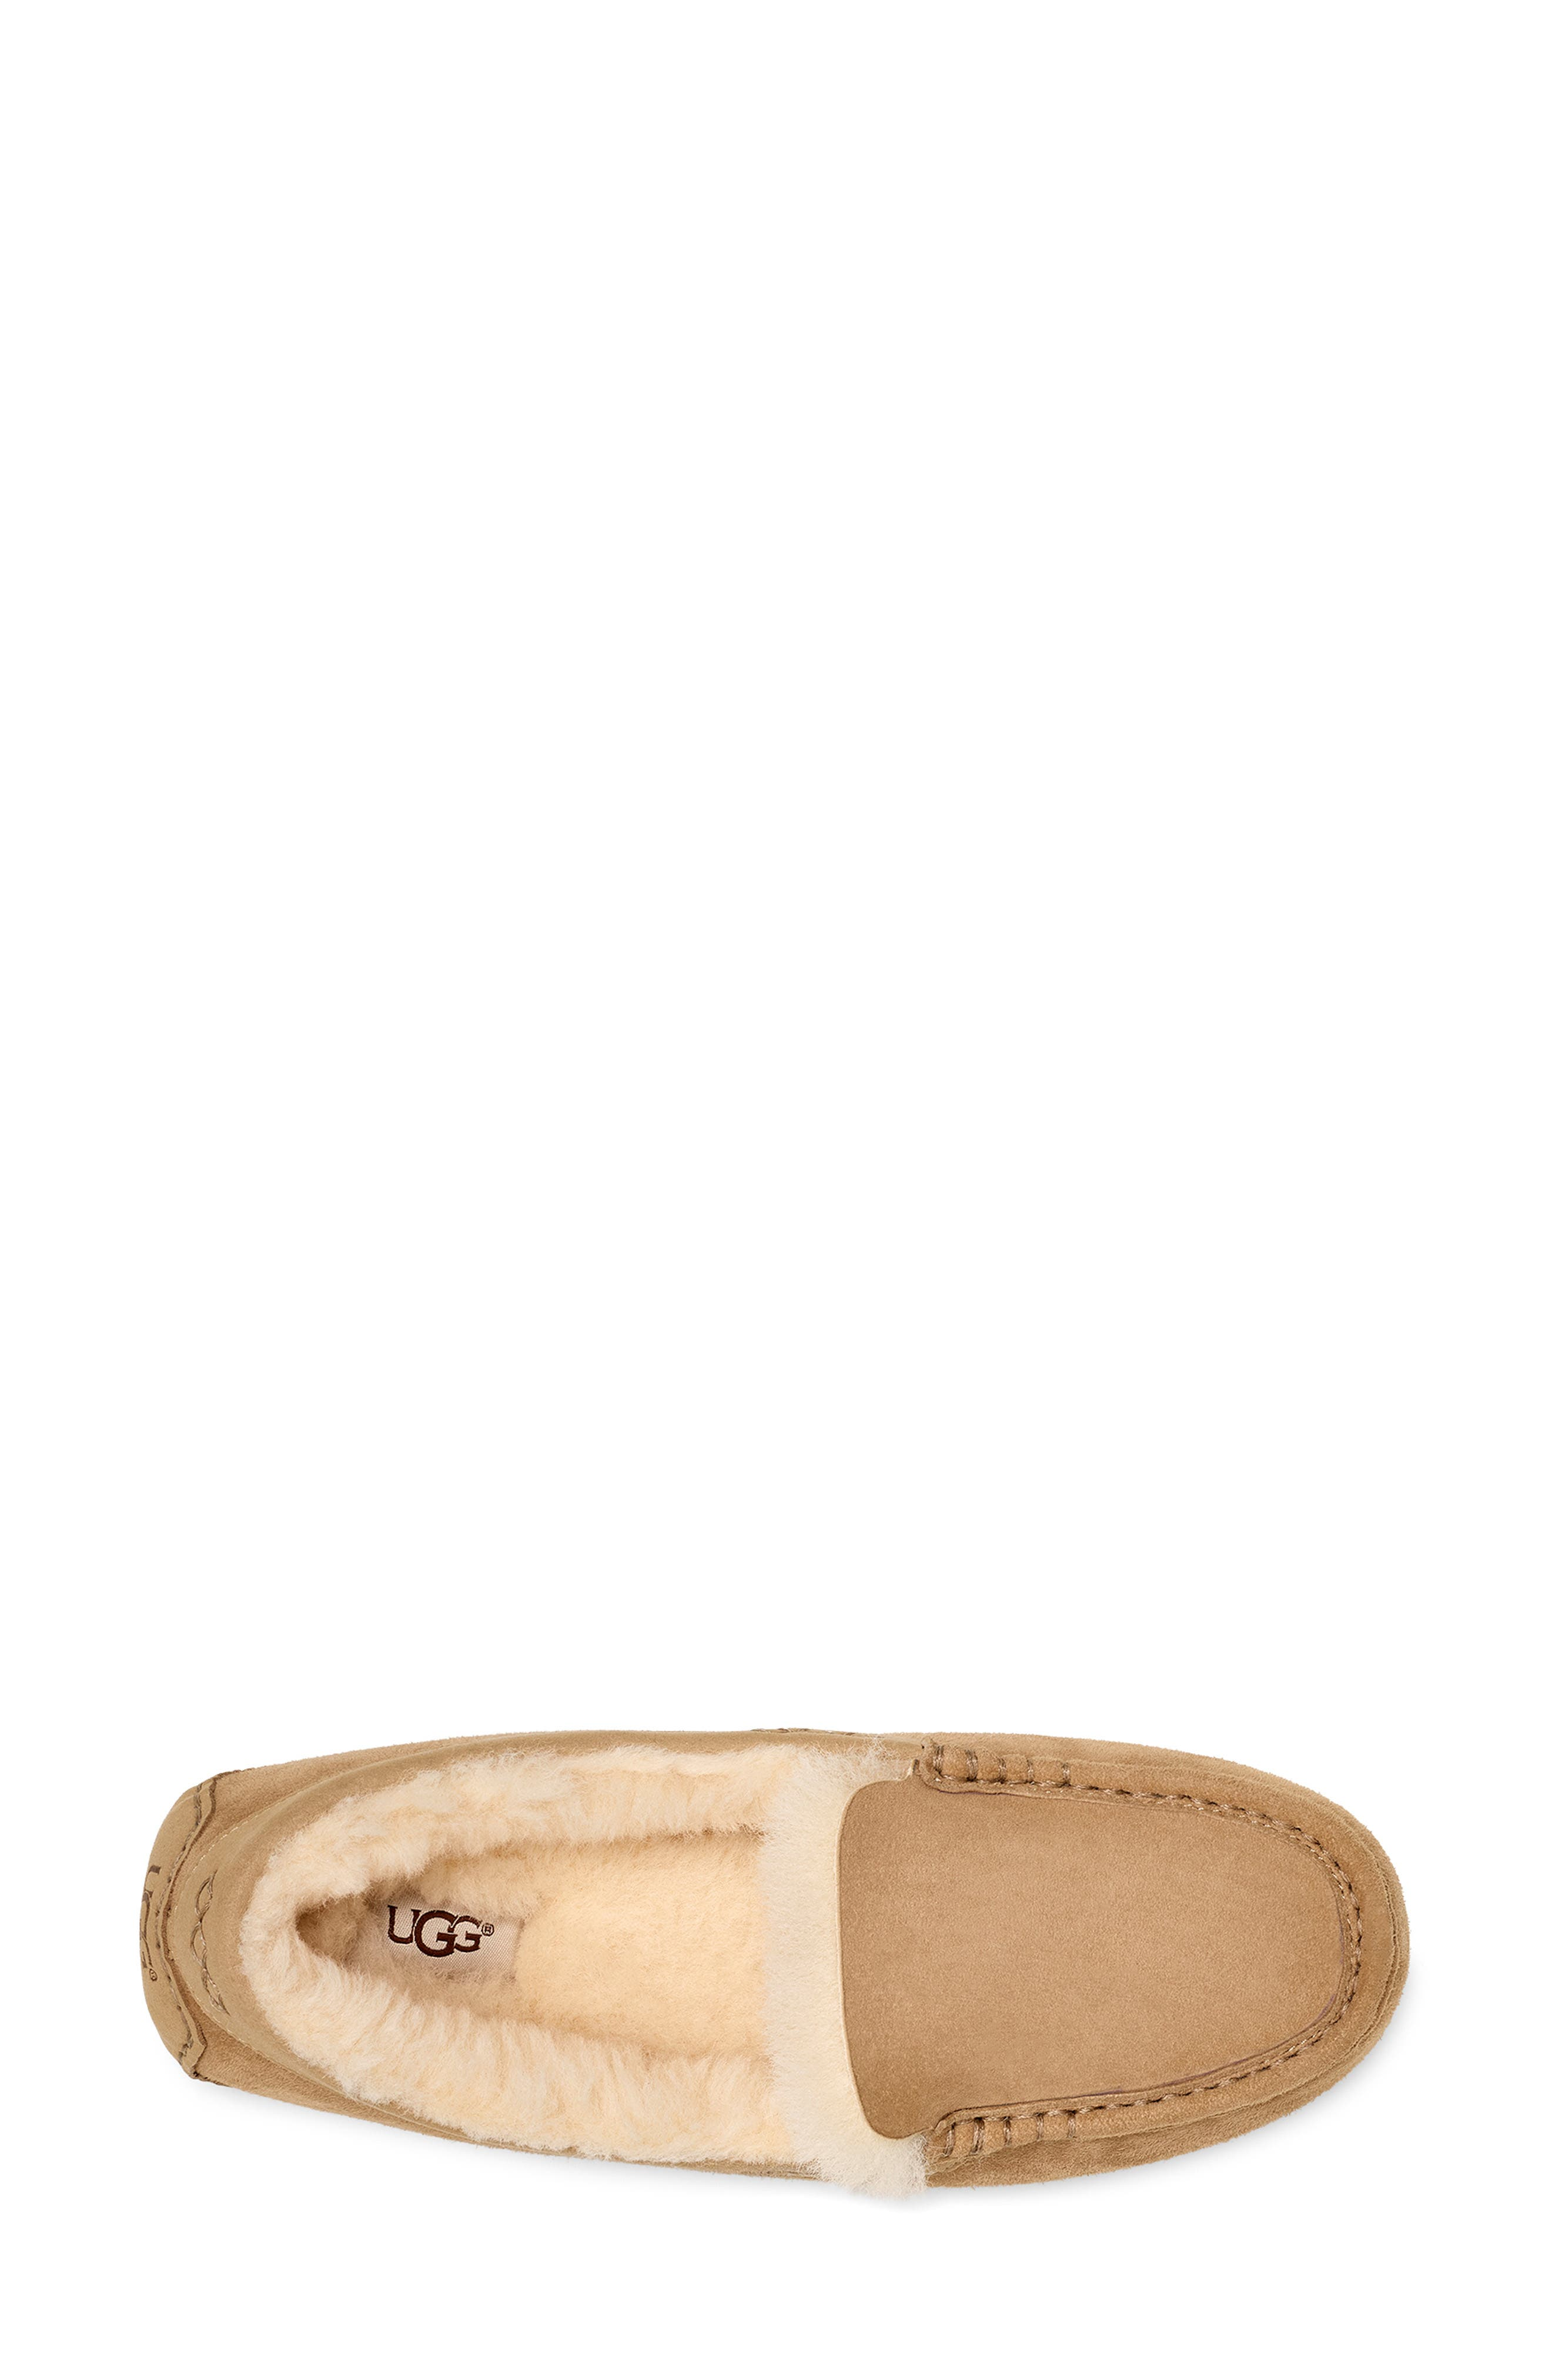 UGG<SUP>®</SUP>, Ansley 40:40:40 Anniversary Slipper, Alternate thumbnail 4, color, SAND